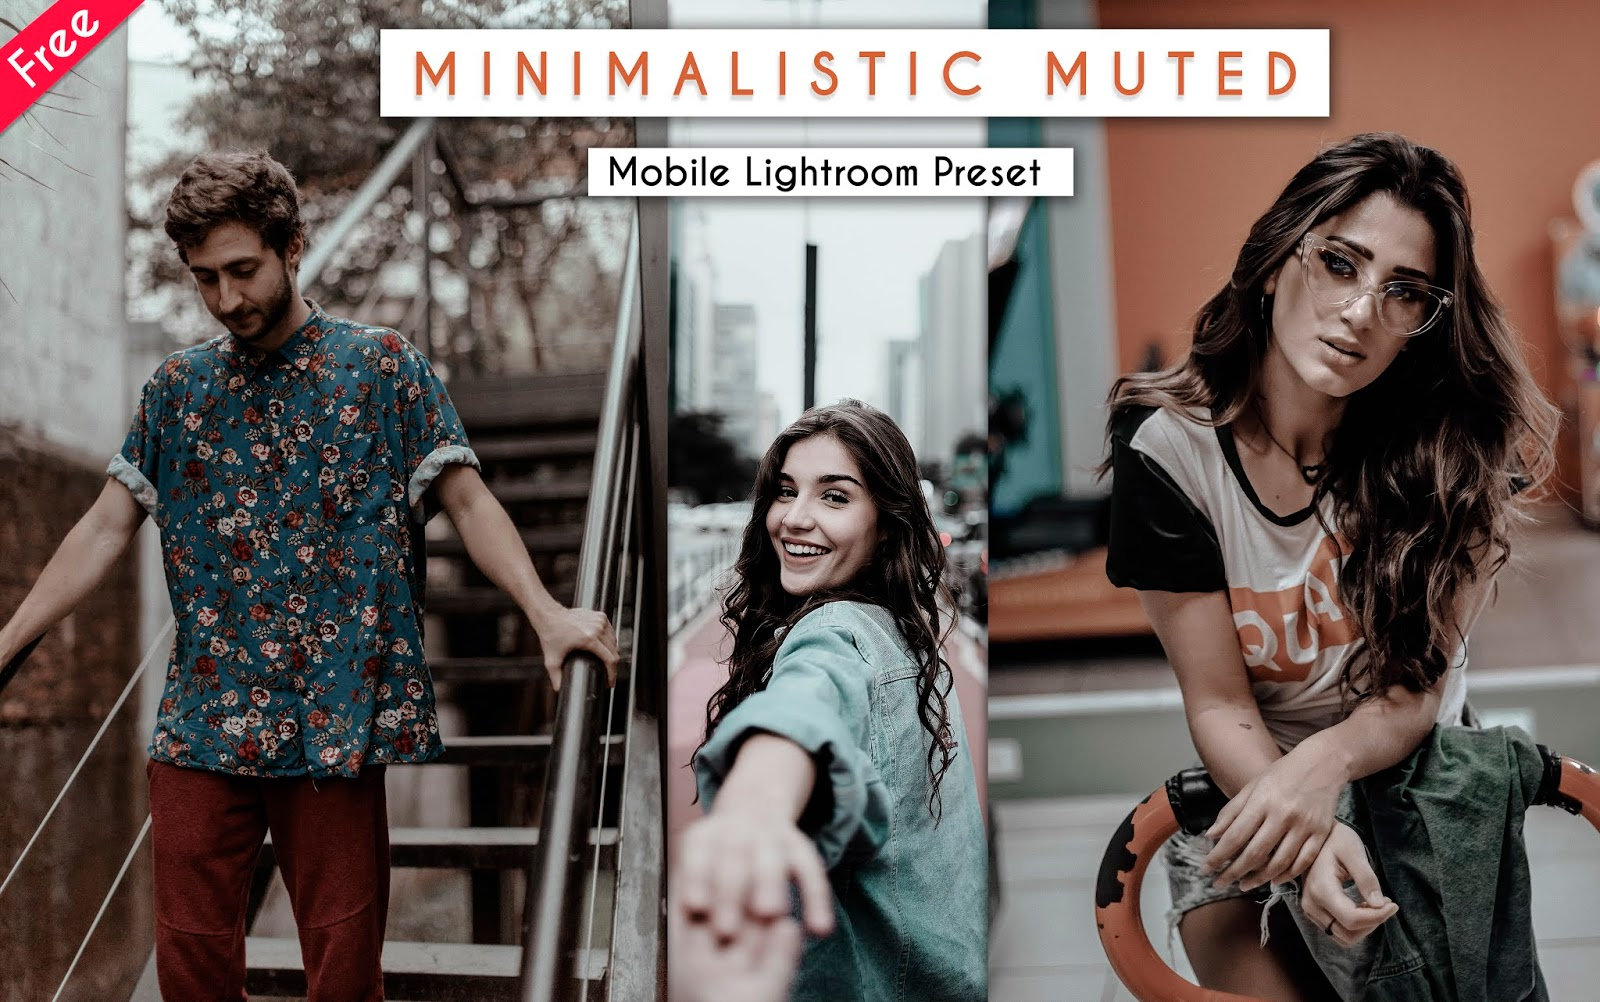 Download Minimalistic Muted Lightroom Preset for Free | How to Edit Your Photos Like Minimalistic Muted Effect in Mobile Lightroom App